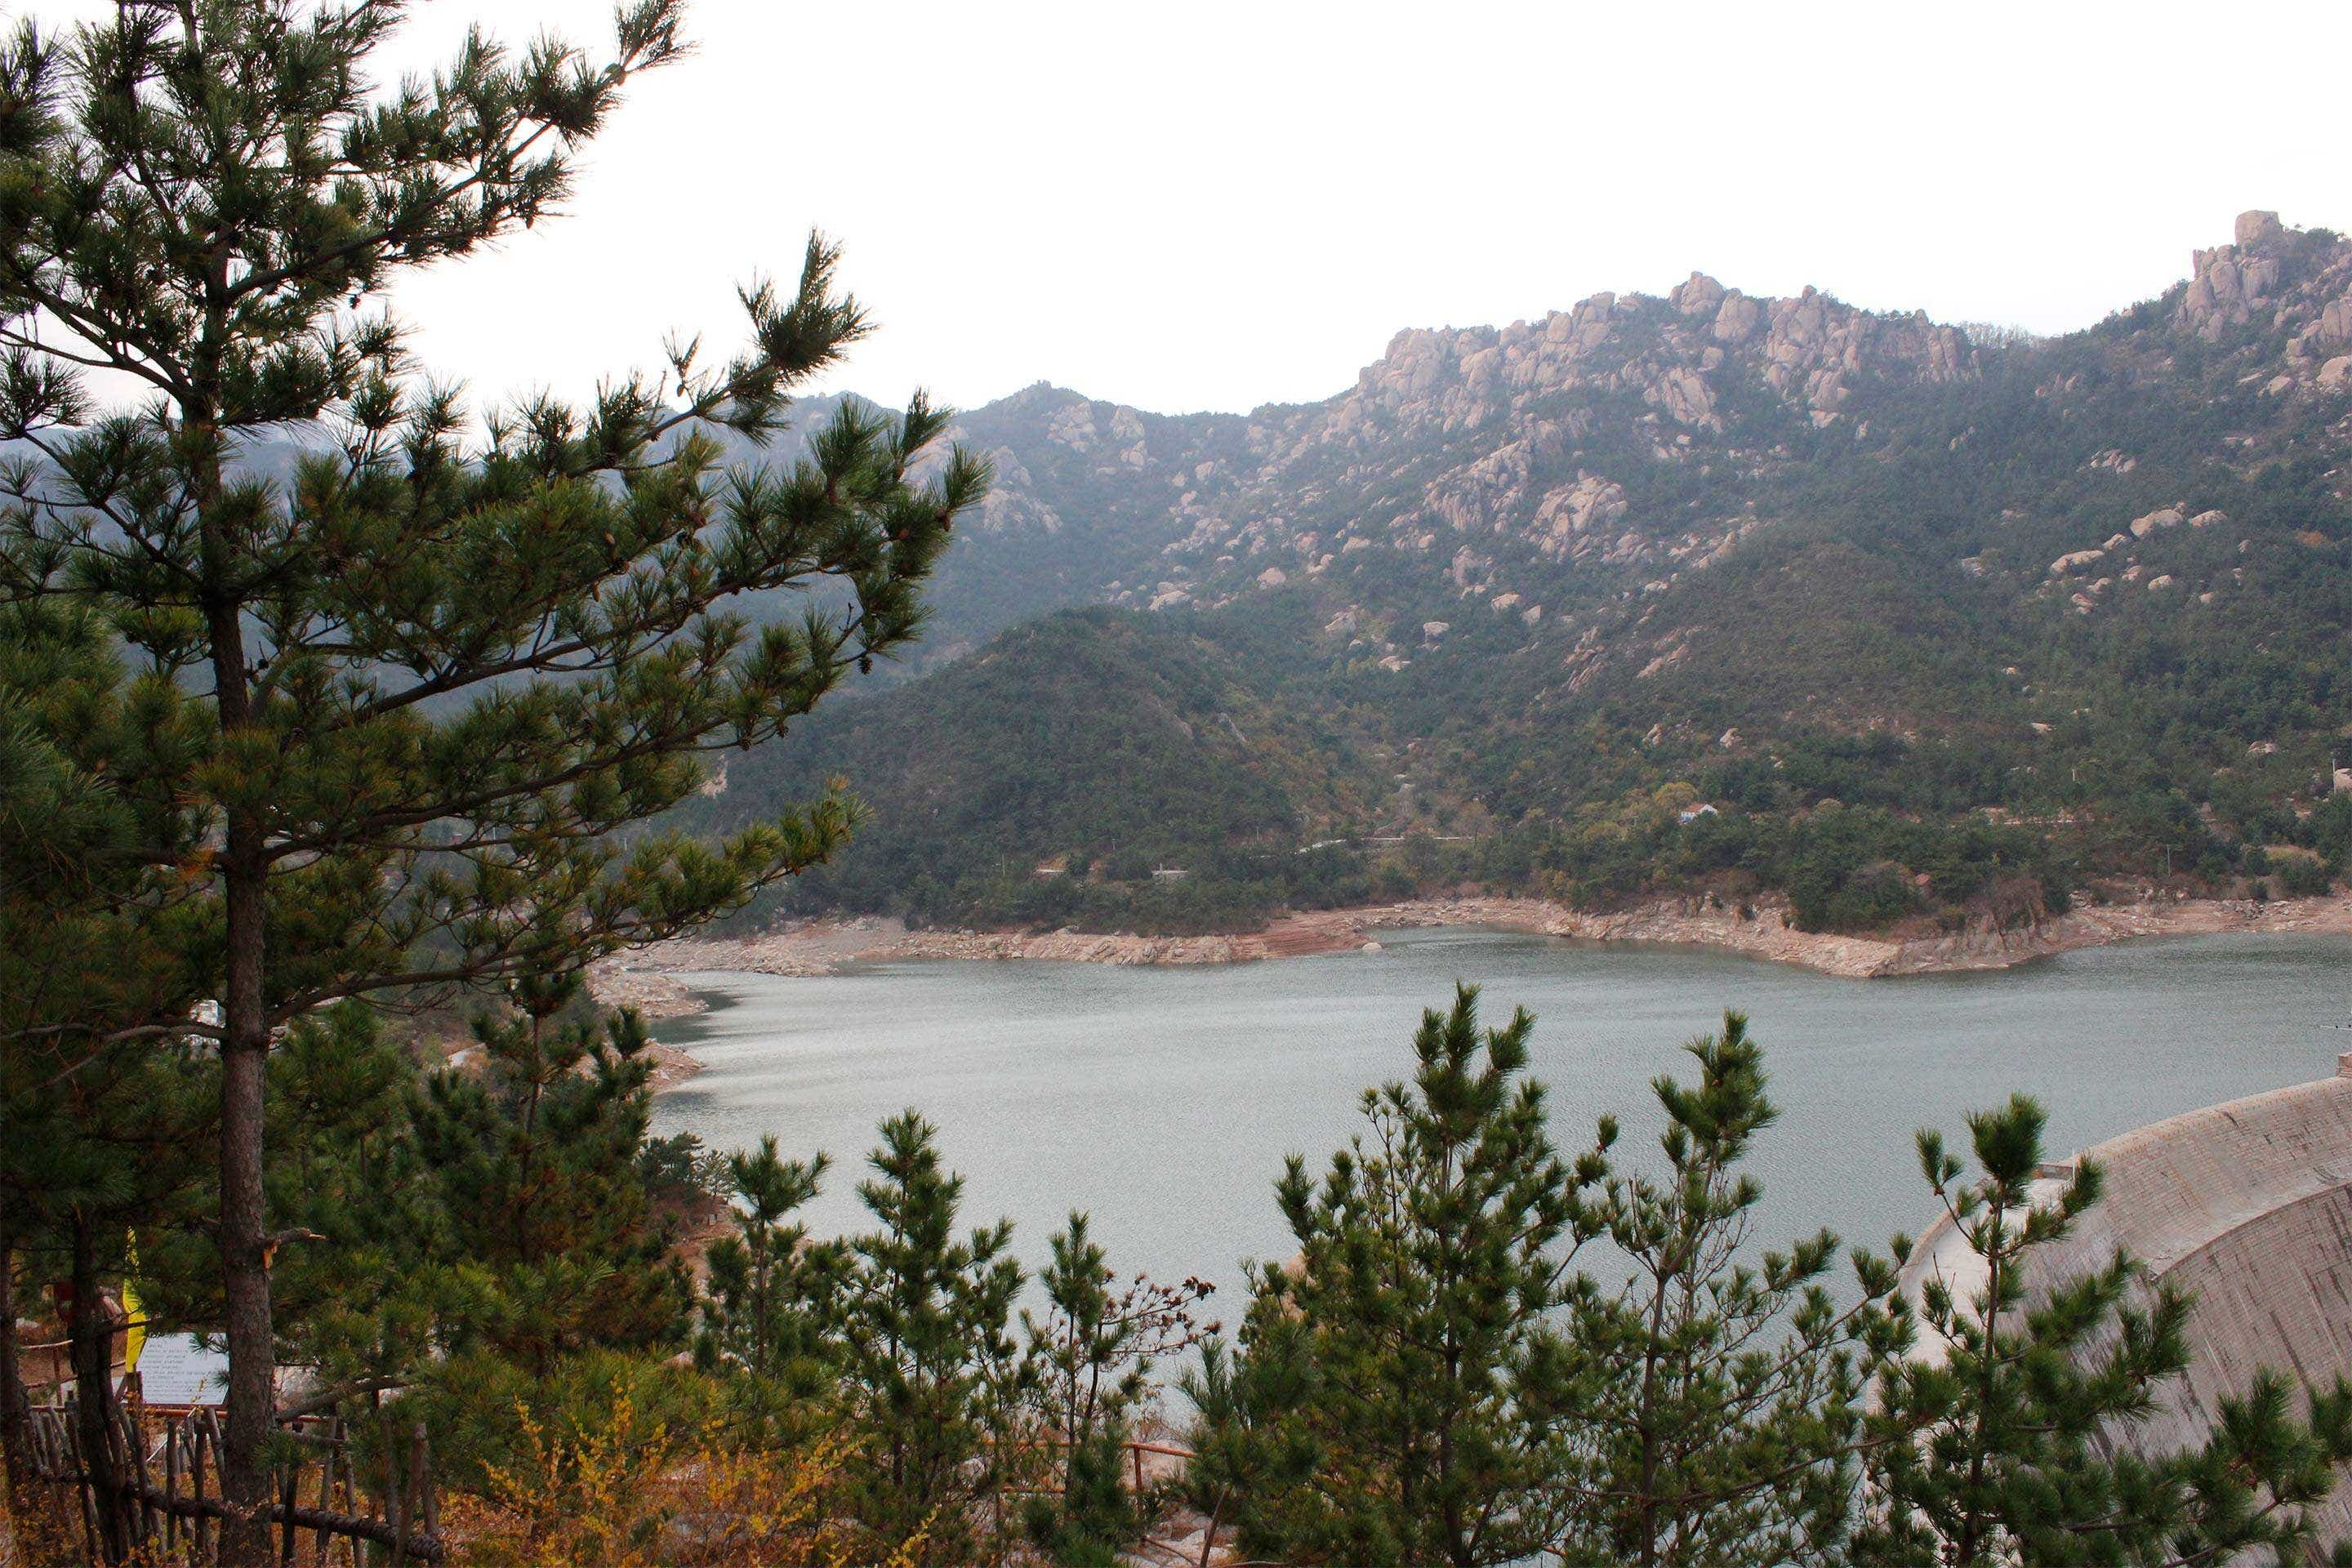 Laoshan's famous mountain spring water reservoirs